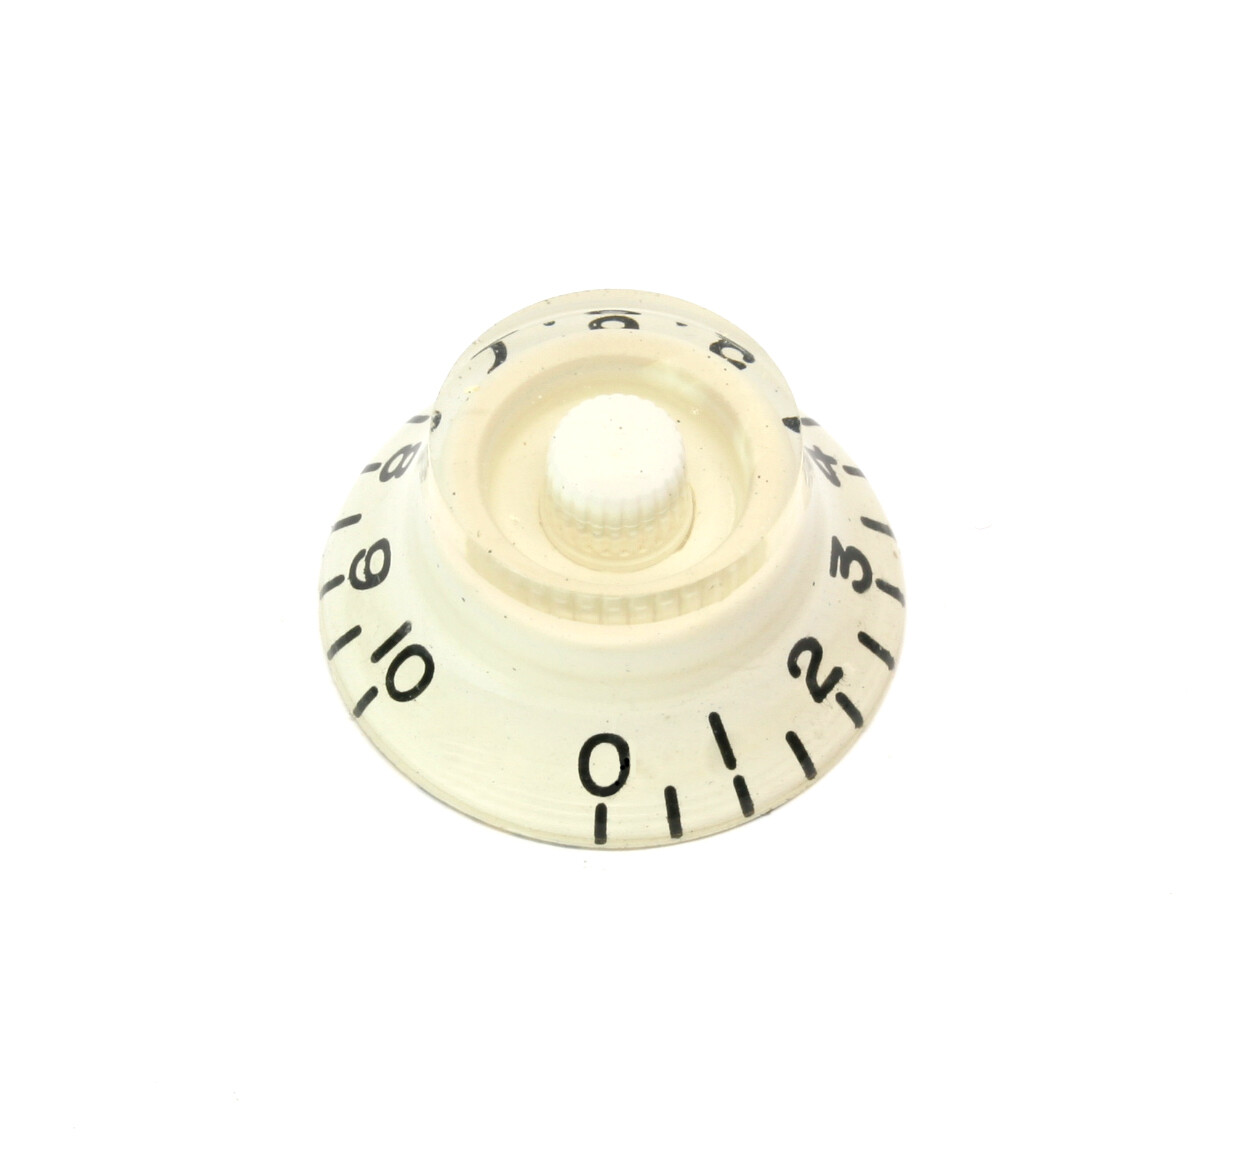 White Bell knob, vintage style numbers, fits USA split shaft pots.